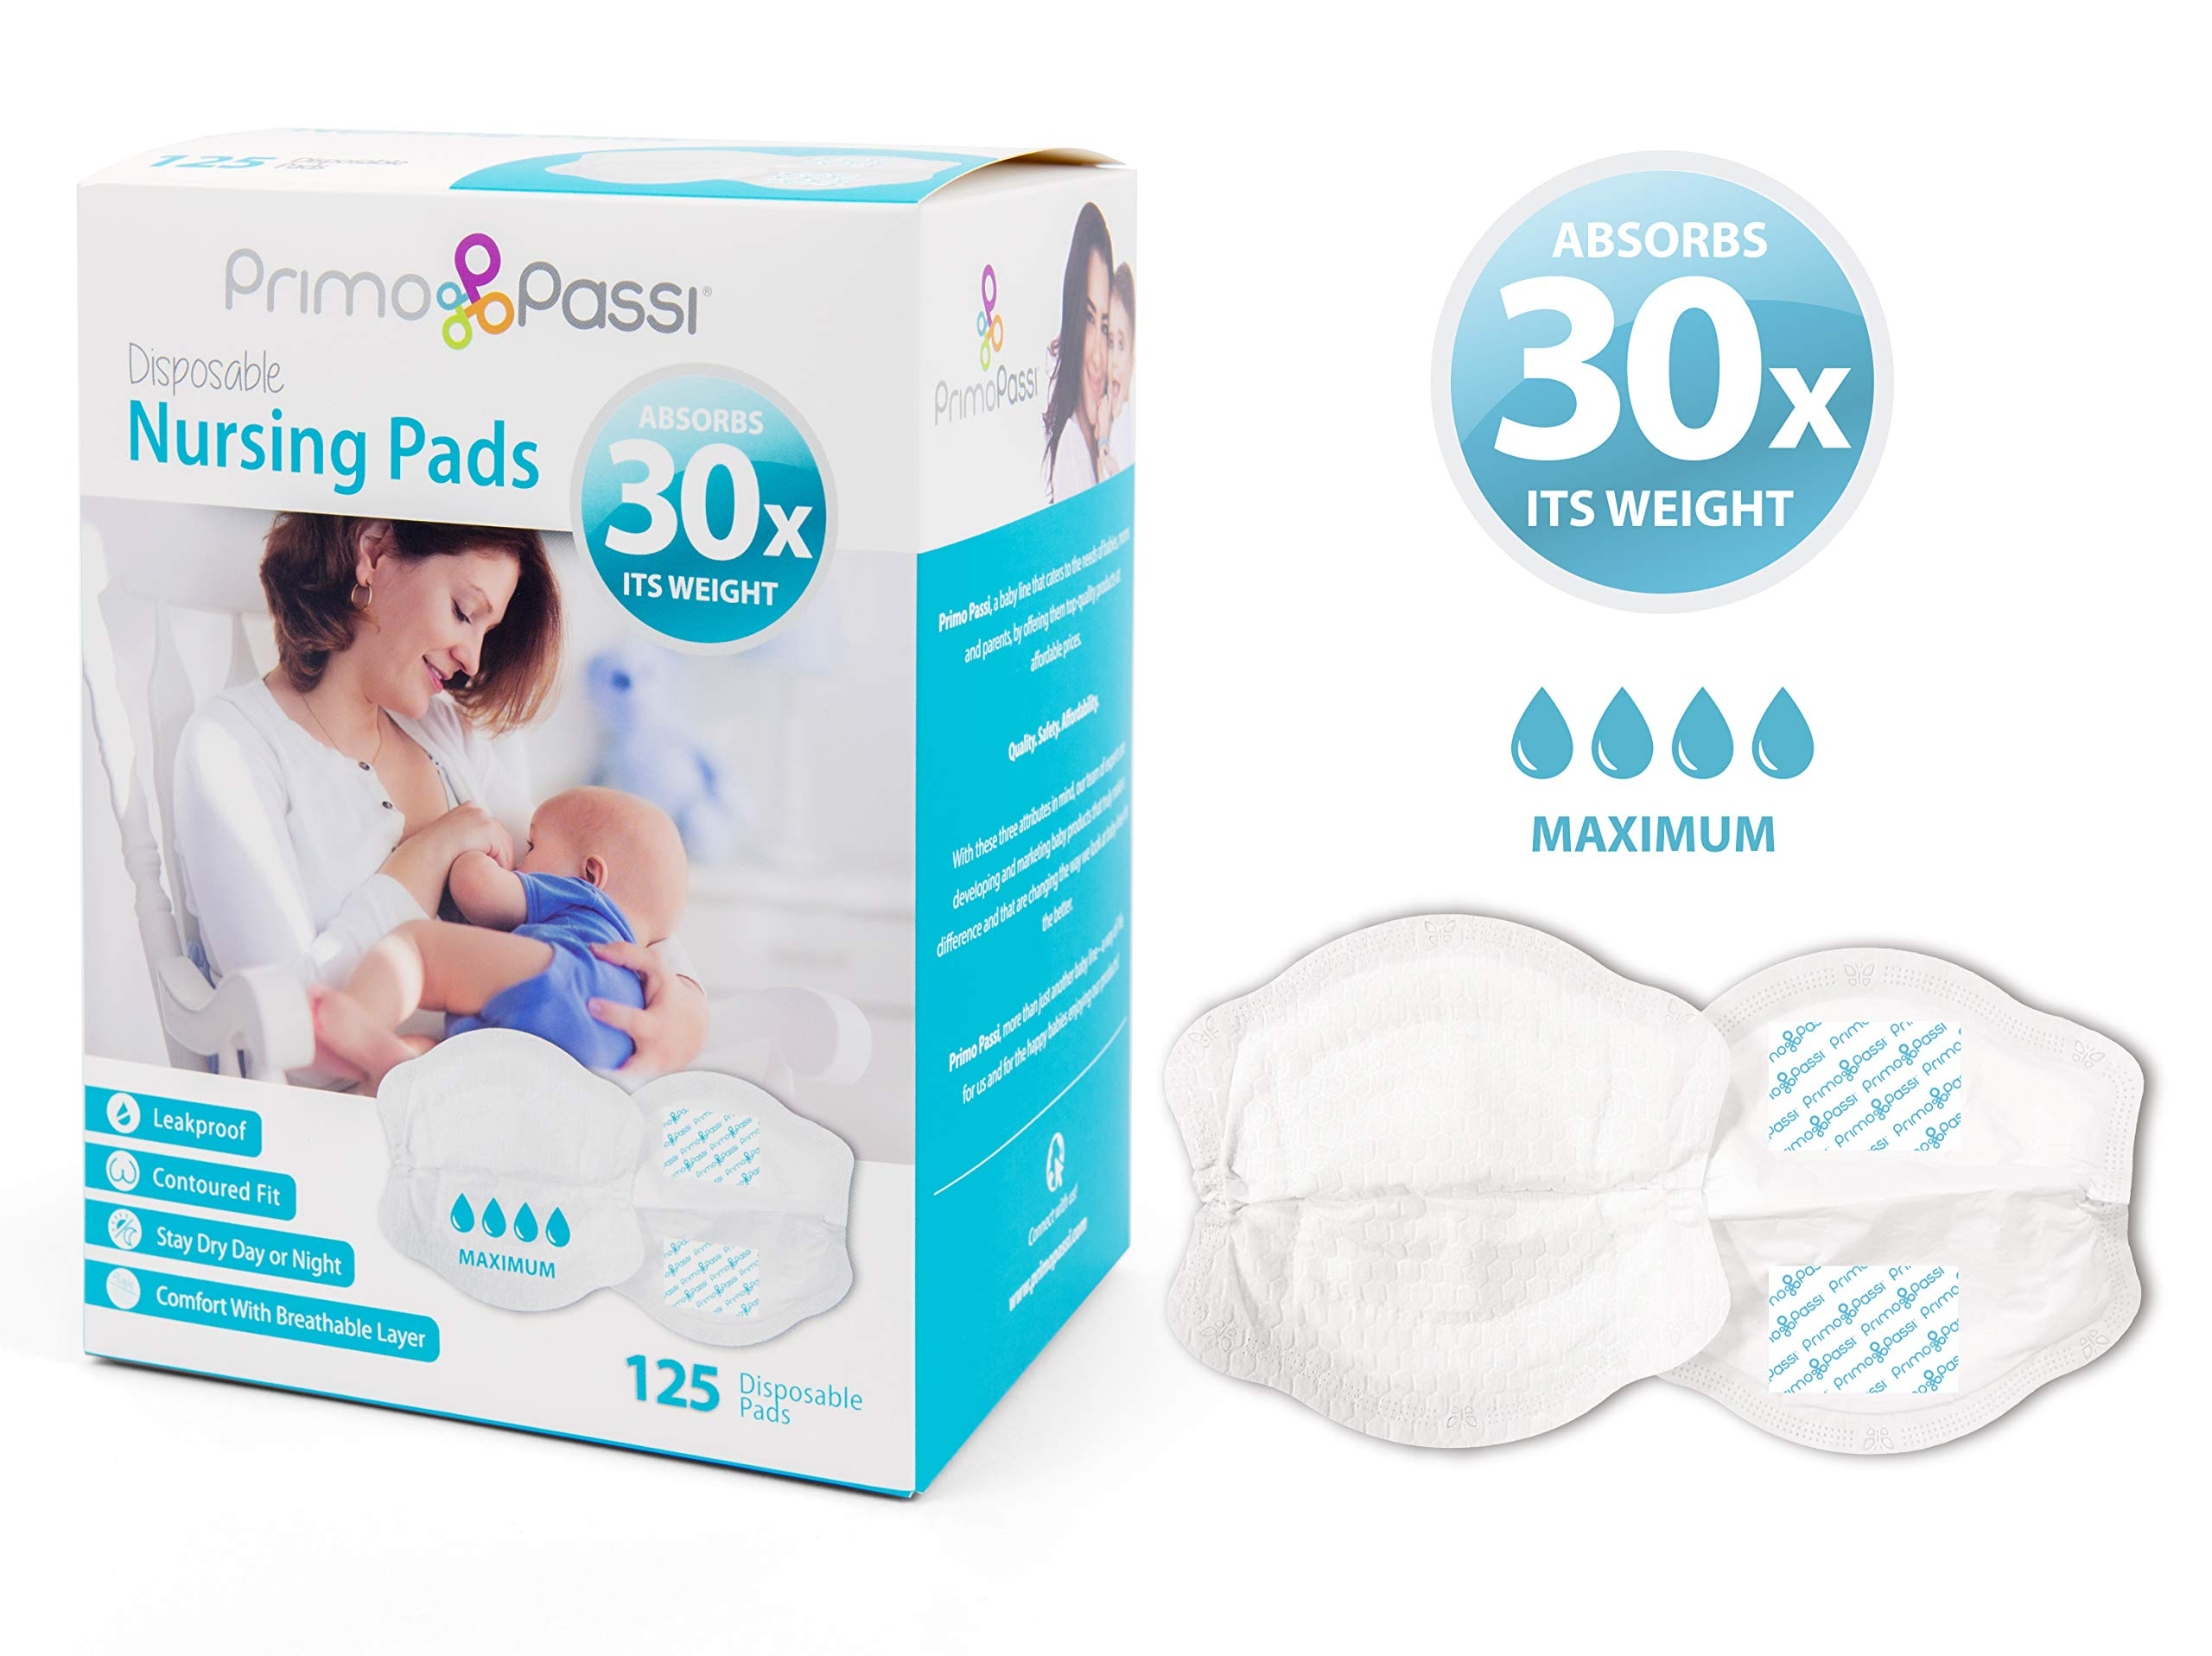 Primo Passi Disposable Nursing Pads for Women I Breast Pads Ultra Thin I 125 Count I Individually Wrapped I Leakproof I Contoured Fit I Natural Shape and Look I Soft & Breathable Material by Primo Passi